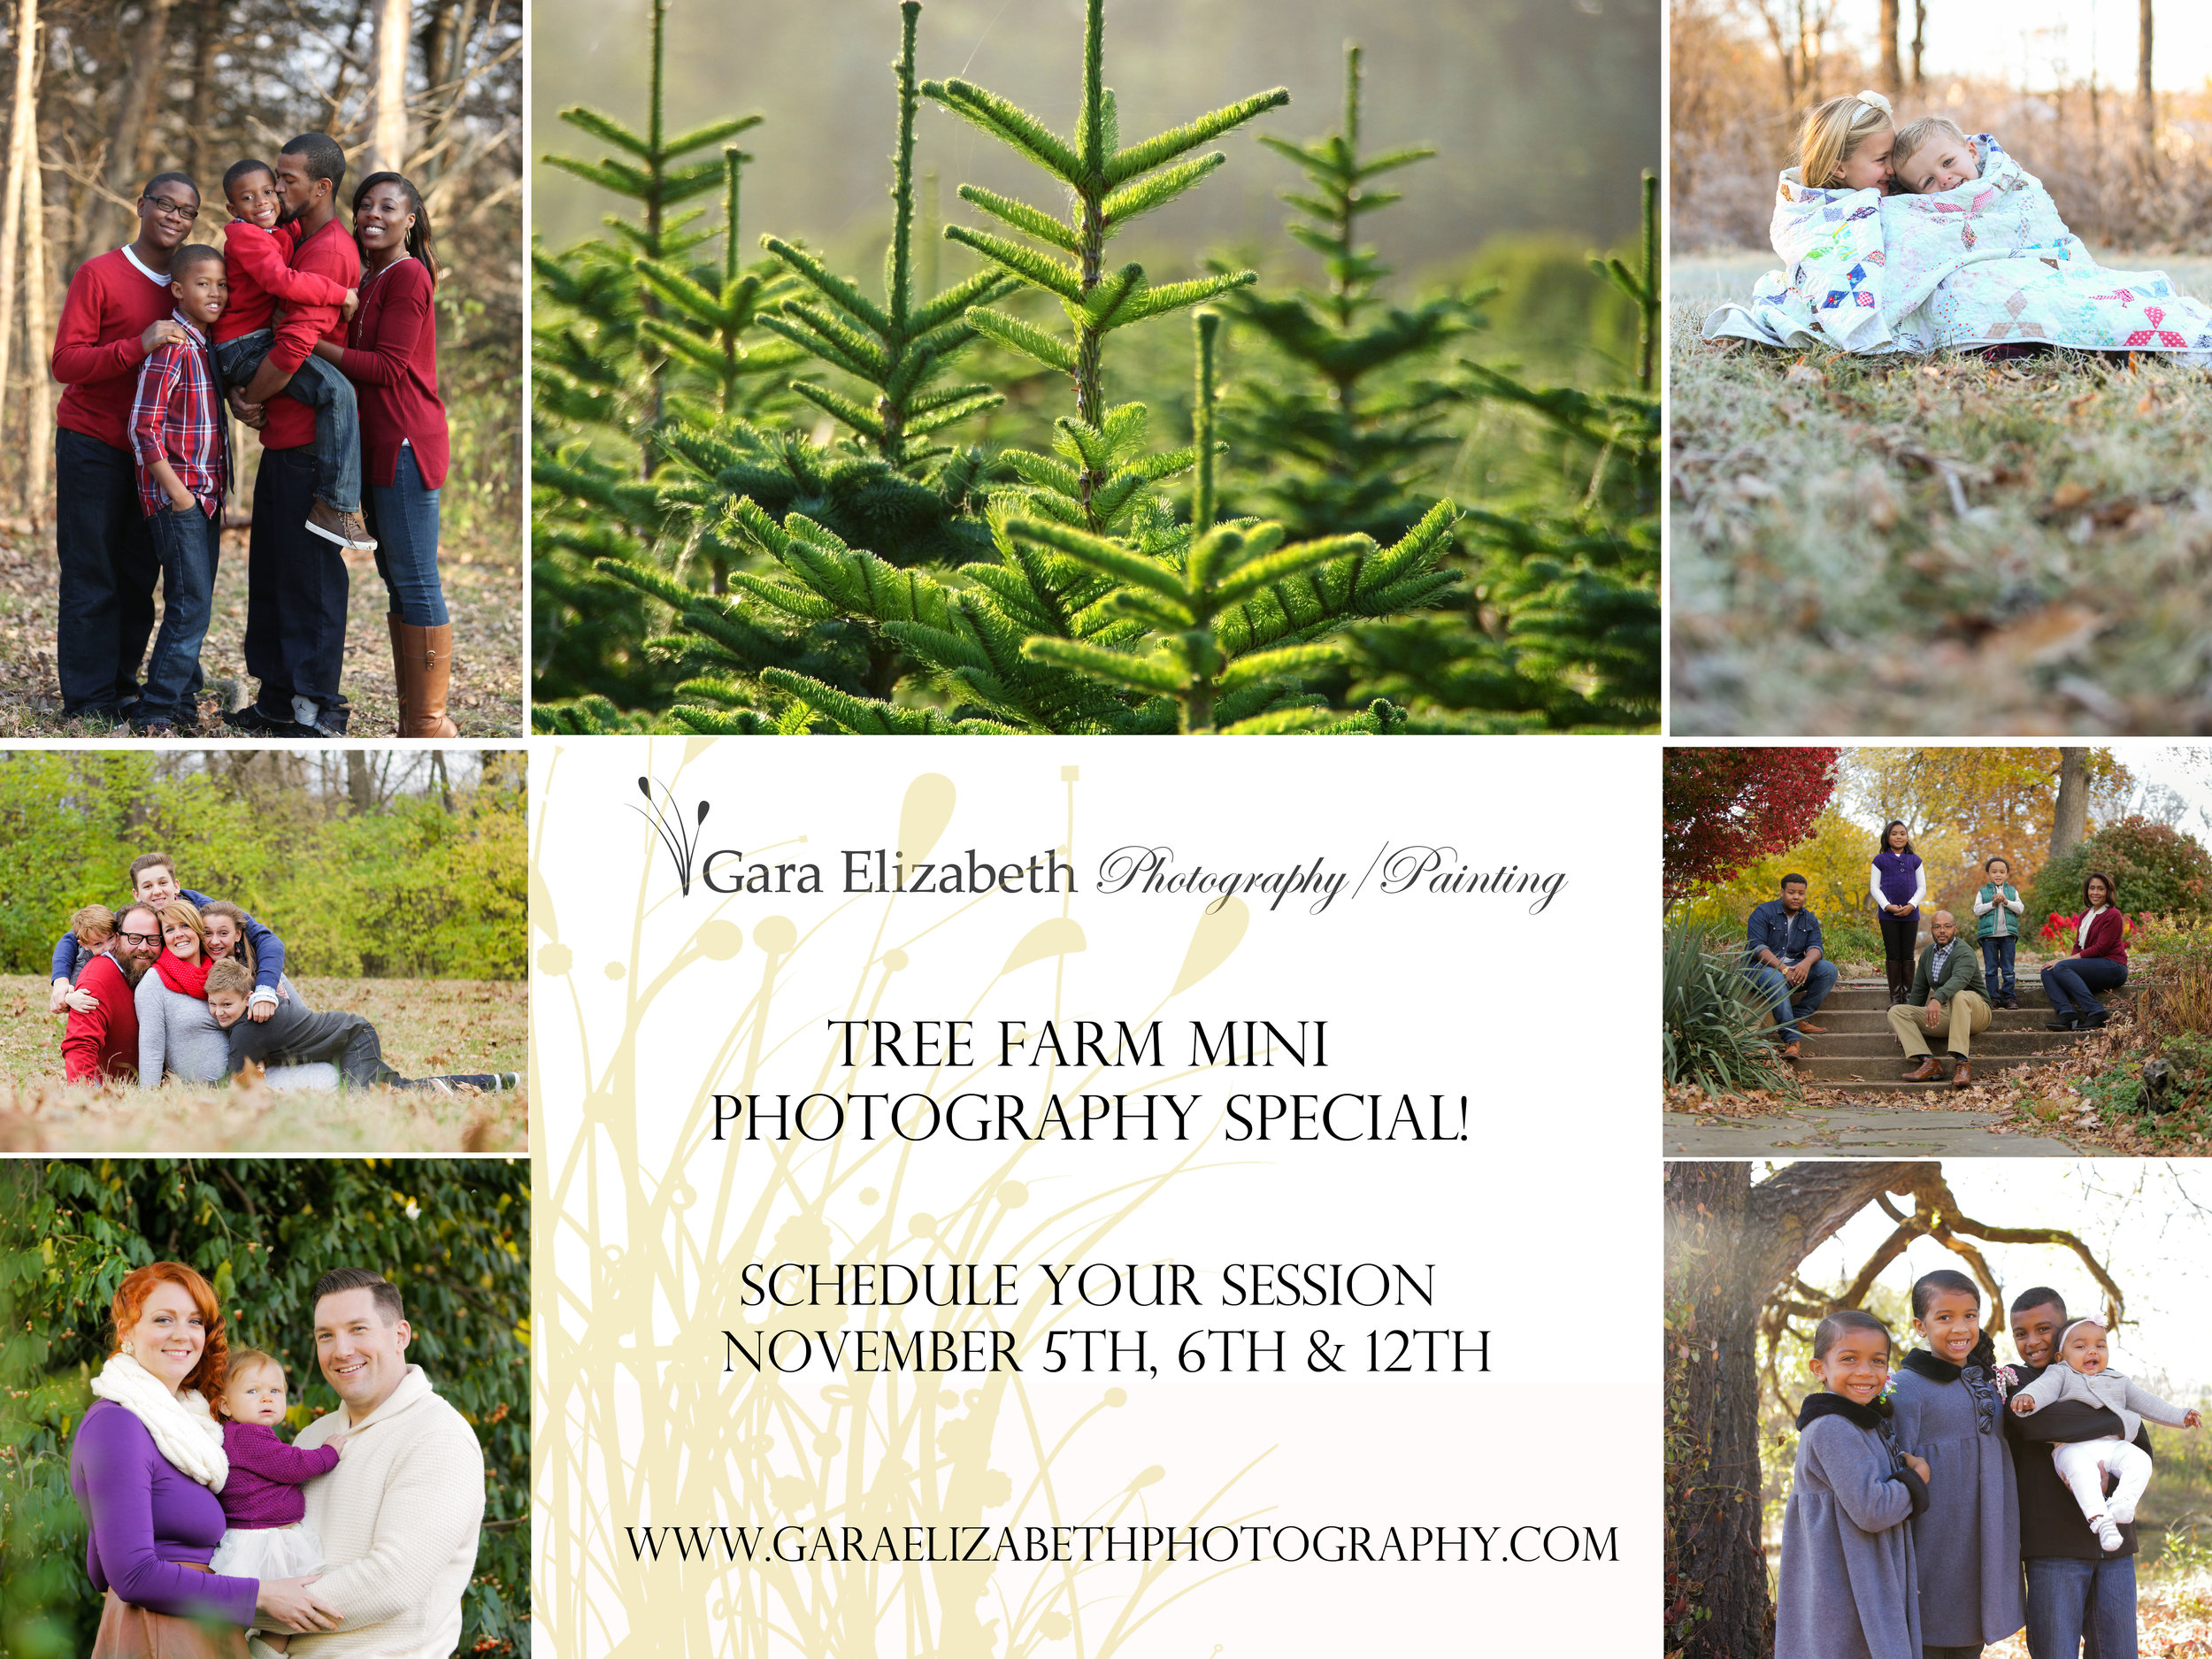 TREE FARM SESSIONS ARE DESIGNED TO BE:   20 minutes  Up to 5 family members (each additional person over five, $25)  10 - 12 edited images with photo release  Digital image sent through Drop Box   SESSSIONS TAKE PLACE ON:   November 5th, 6th & 12th  7:30AM-9:30AM/ 4:30PM-6:30PM   SESSIONS TAKE PLACE AT:   16704 New Halls Ferry Road (New Halls Ferry & Shackelford Road) Florissant, MO 63034   PACKAGE PRICE:    $275